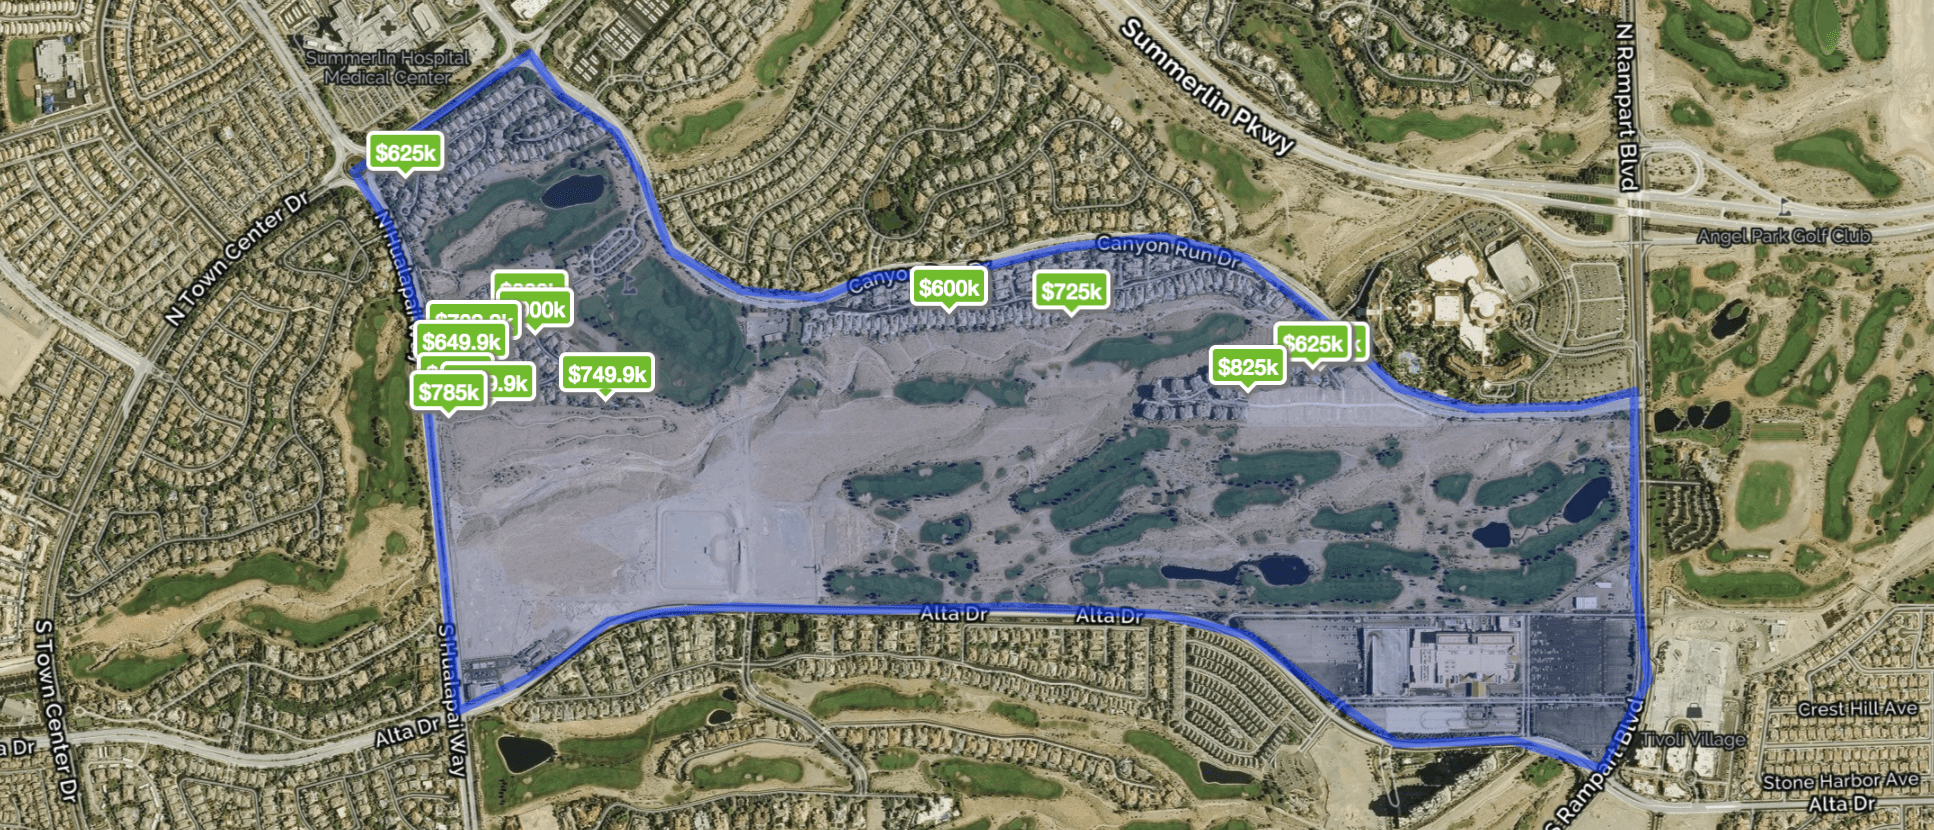 Homes for Sale by Map and Price in The Canyons of Summerlin Nevada